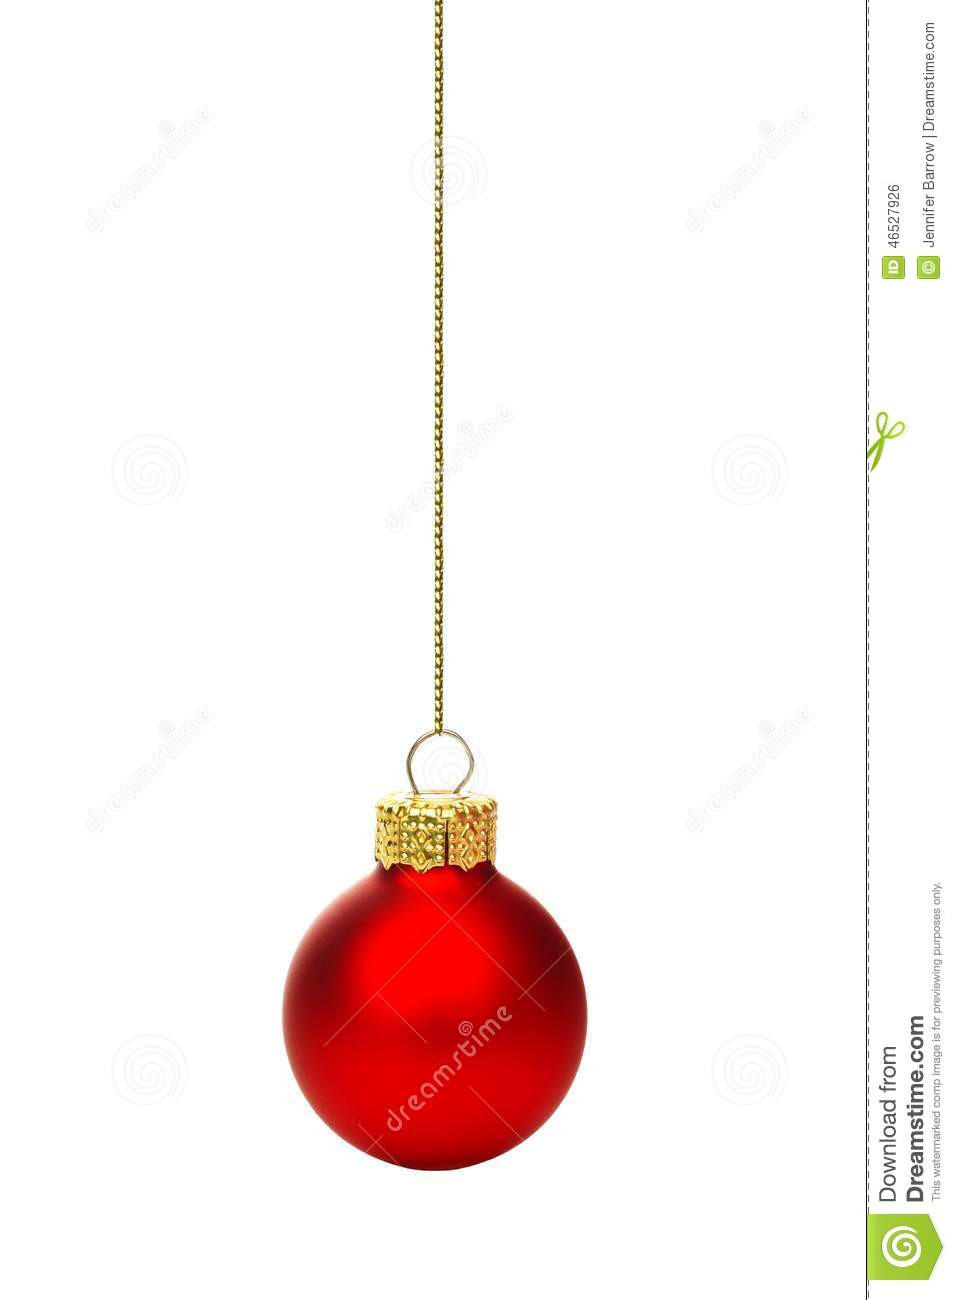 Hanging Christmas ornaments Lovely Hanging Red Christmas ornament isolated Stock Of Luxury 45 Pictures Hanging Christmas ornaments